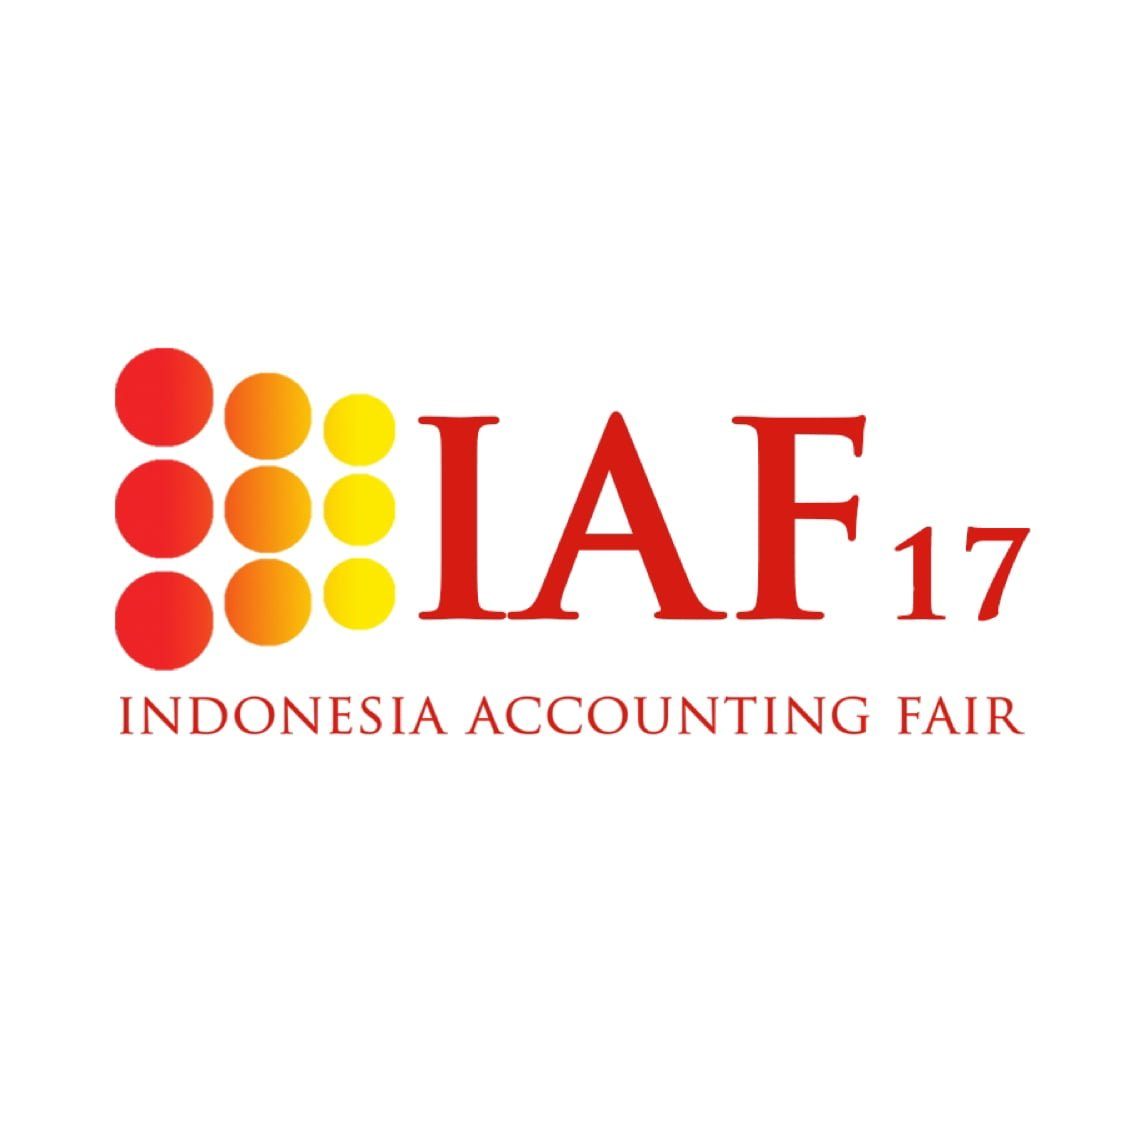 Indonesia Accounting Fair 17 FEB UI